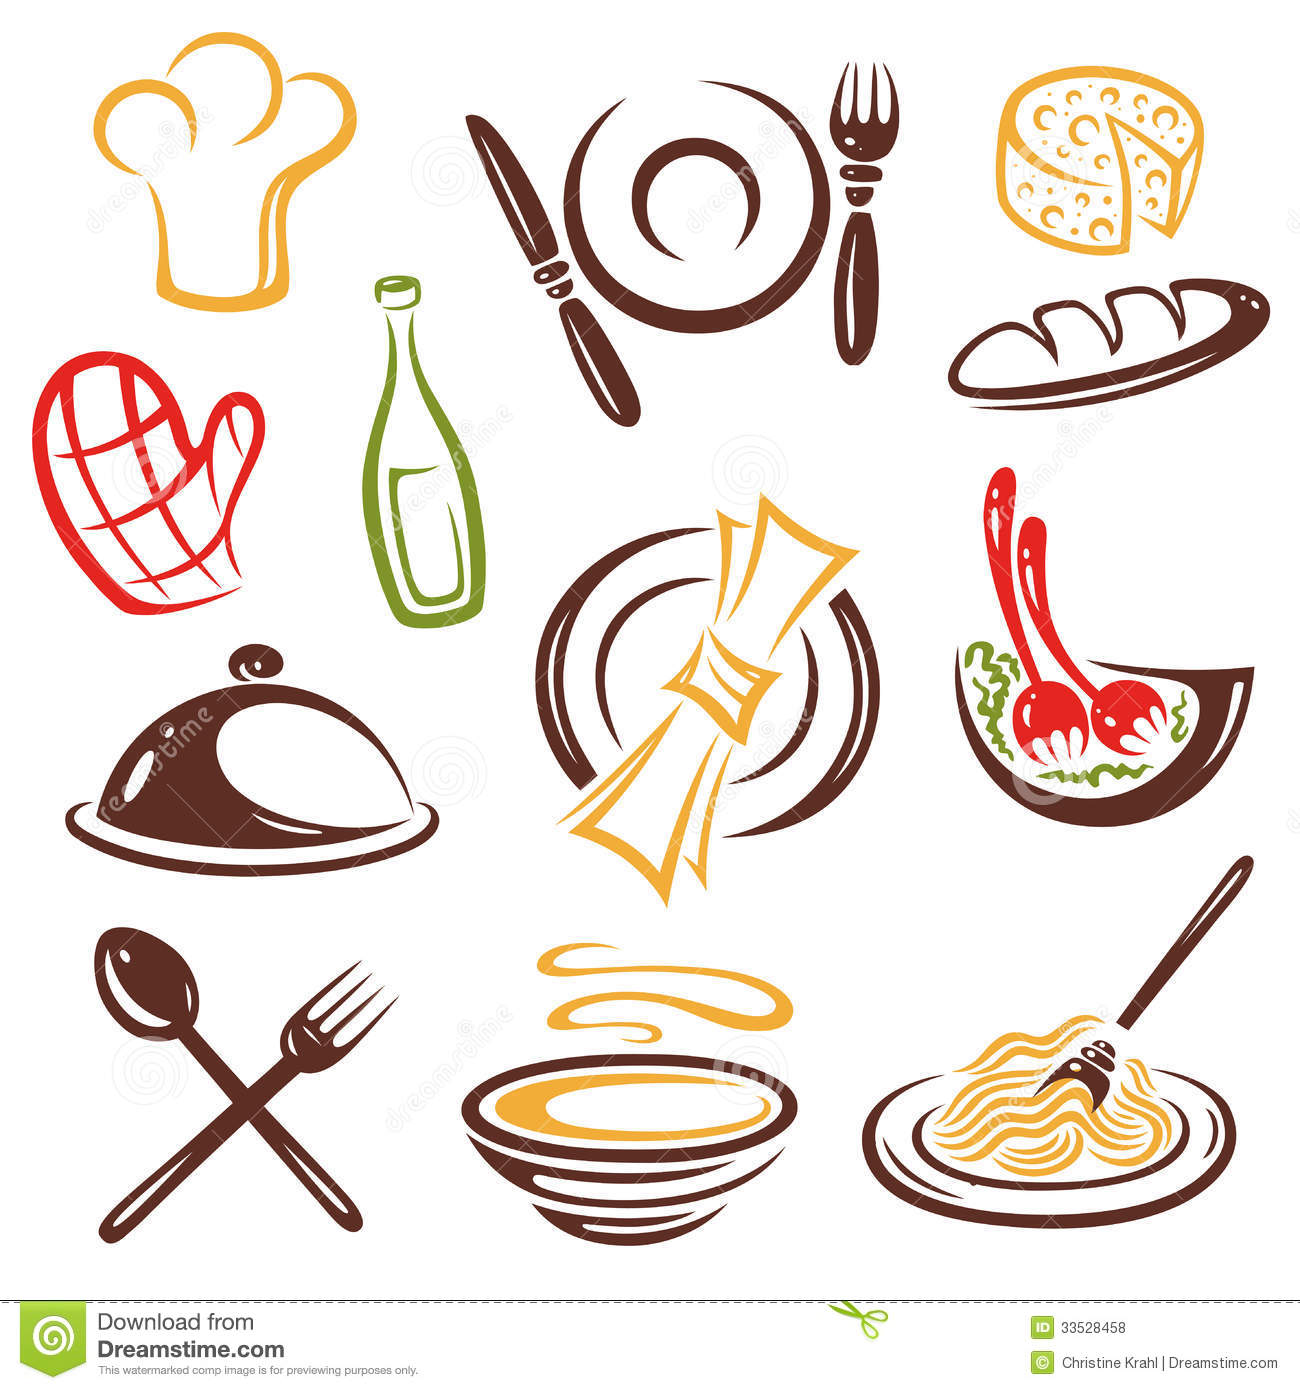 18 Cooking Vector Free Images Food Icon Vector Free